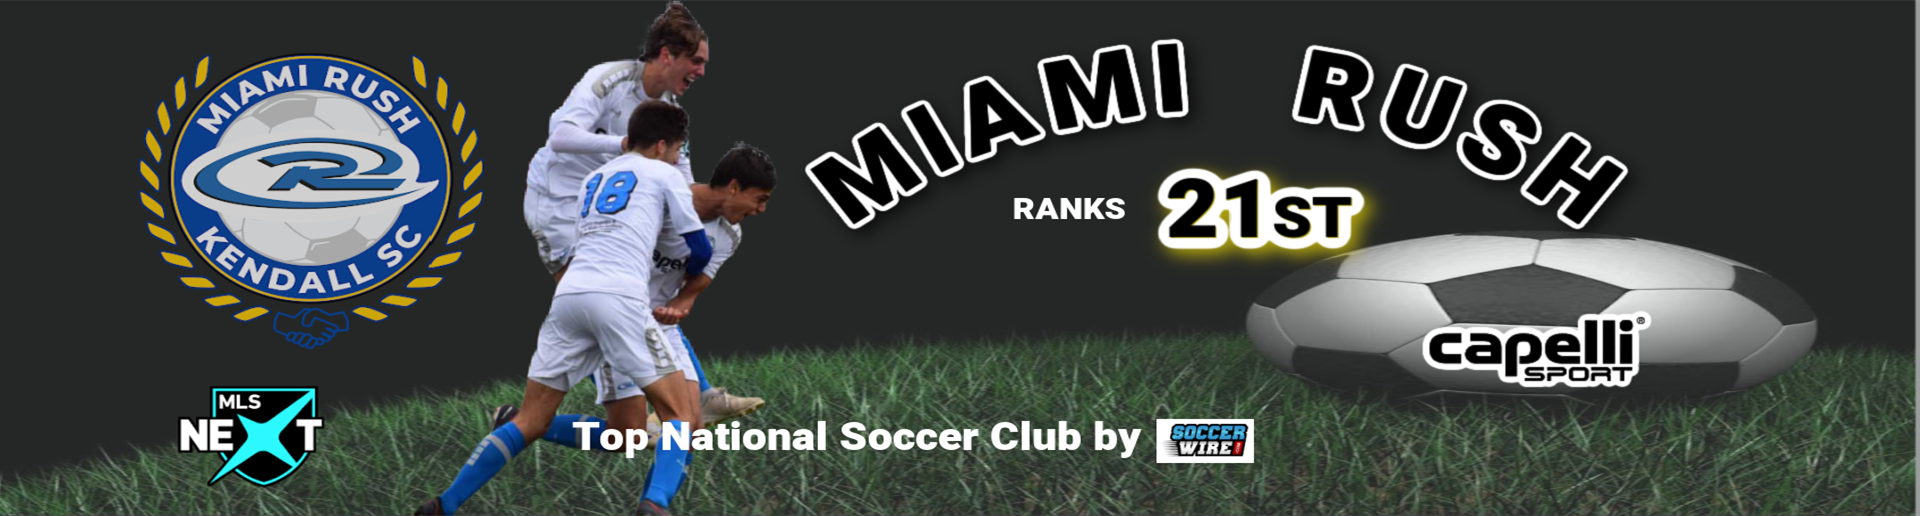 Miami Rush Ranked 21th in US